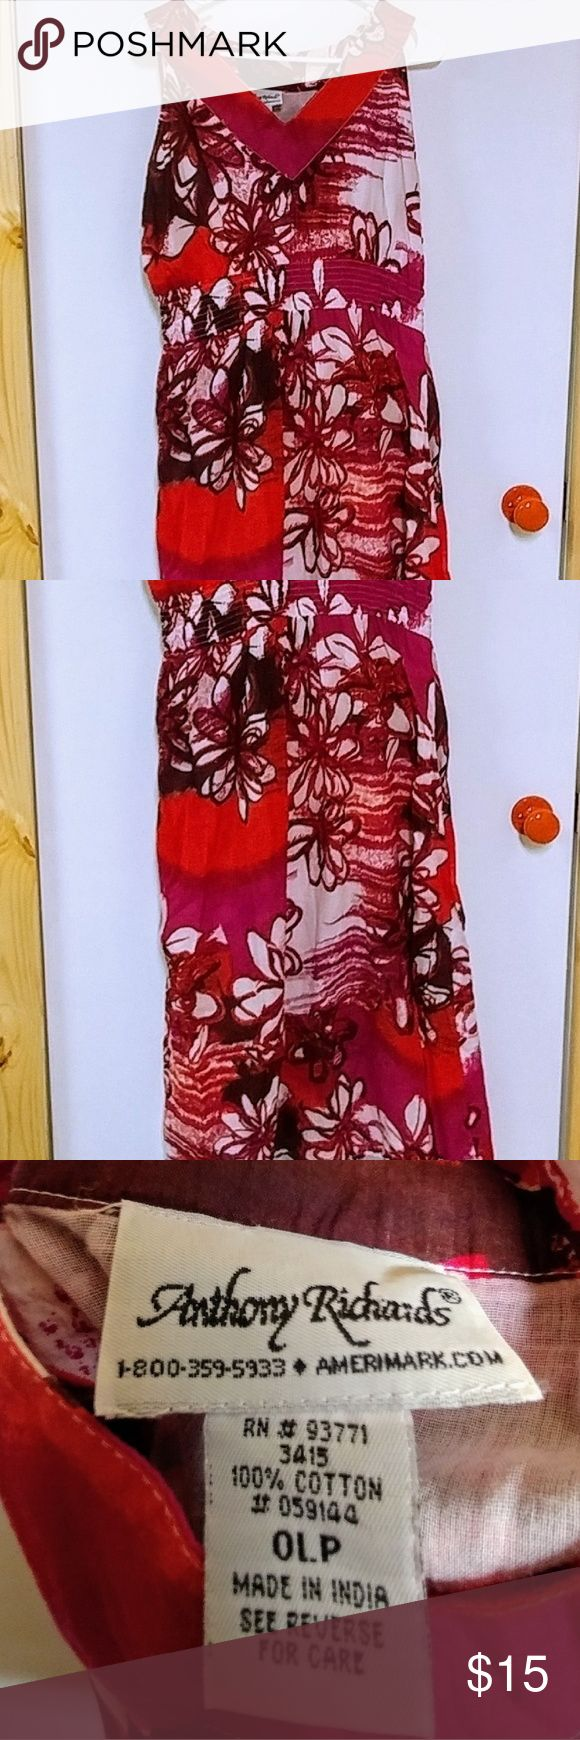 Floral Cotton Sundress Cotton Sundress Sz 0LP not sure the meaning of that but I am an xl or 1x and this fit great. Elastic stretchy under bust Soft light gauze cotton with soft light gauze lining.  Very pretty and comfortable. Excellent condition 💕💕Buy with confidence: 🌹Poshmark Ambassador 🚭Smoke & Pet Free Home 👏Top Rated Seller 4.9🌟 🕣Fast Shipping! 📈Top 10% Seller 🚸Posh Mentor 🎉Bundle Discounts Dresses Midi